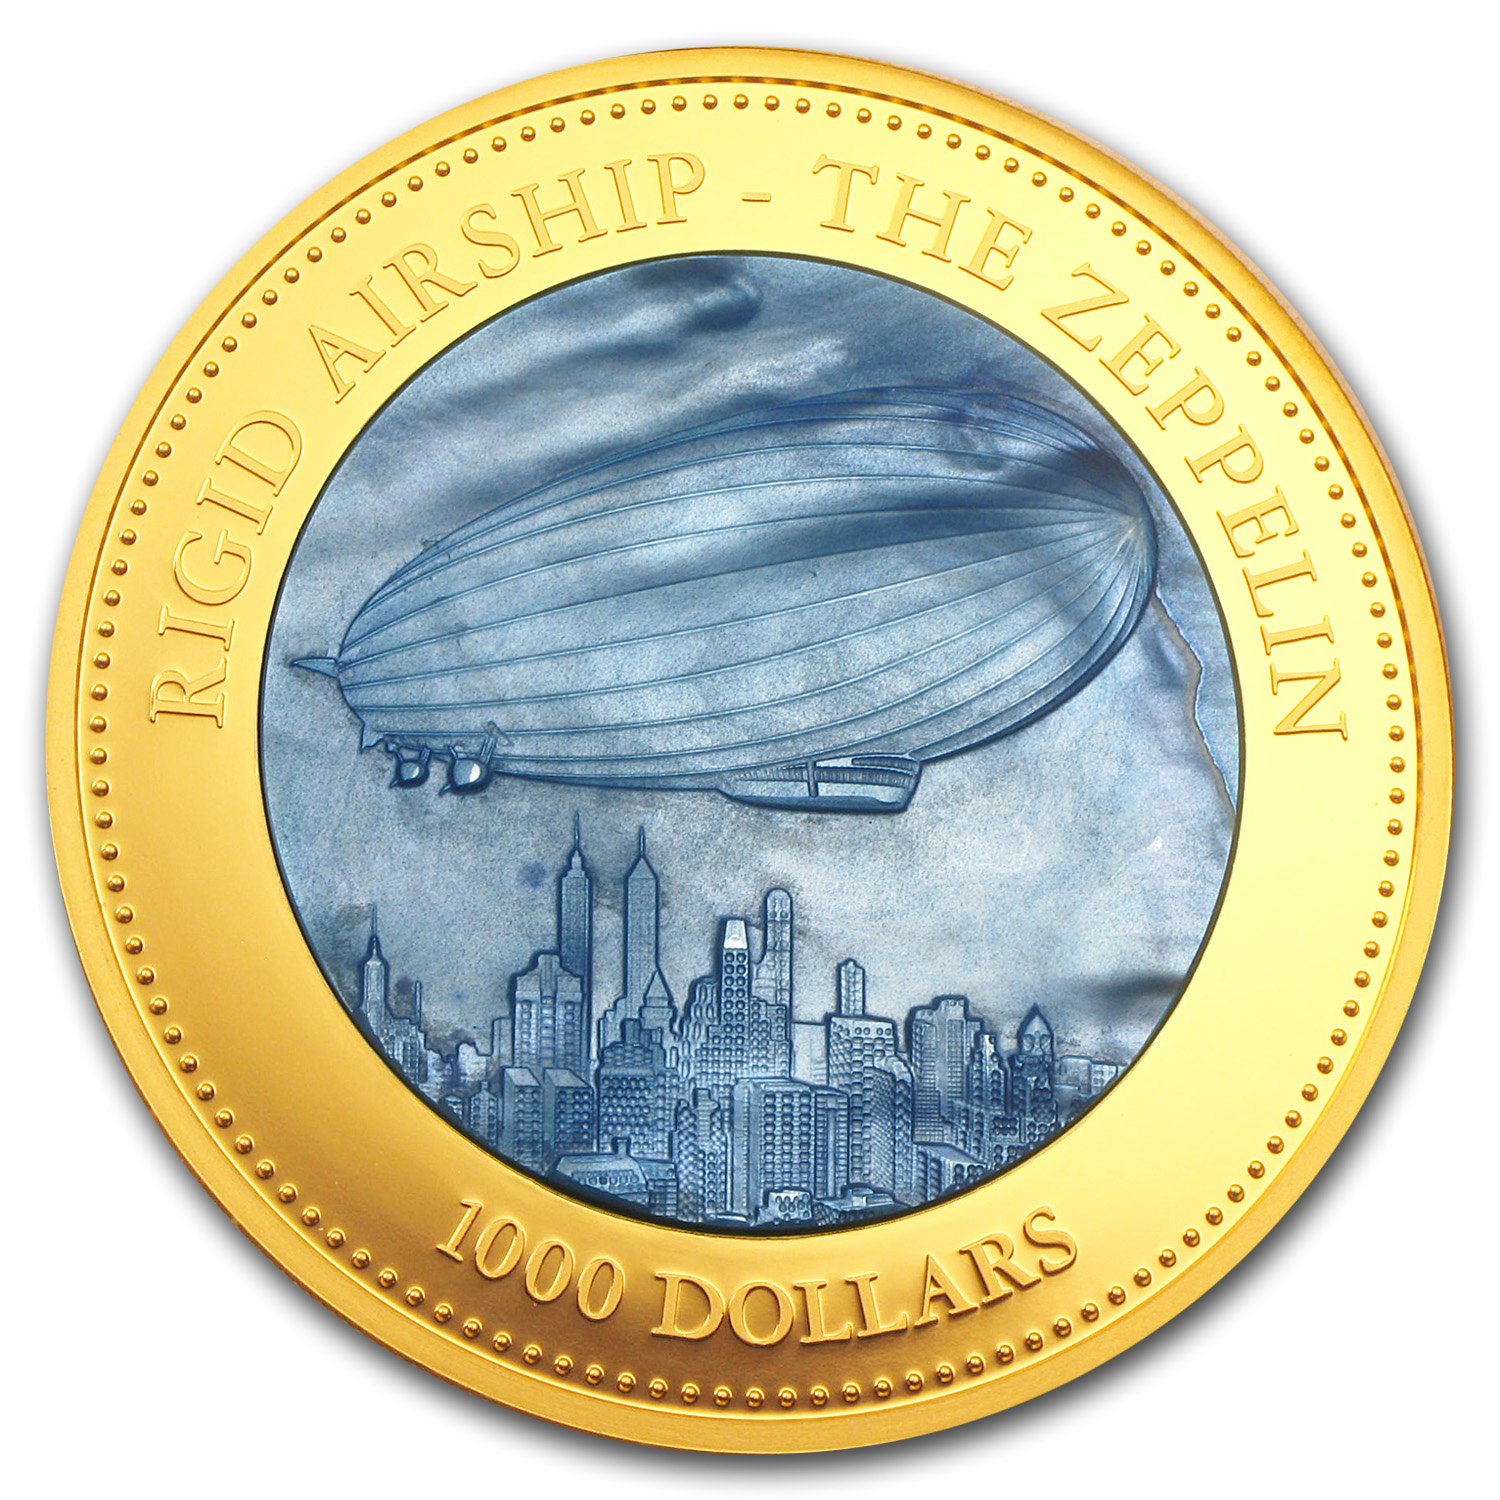 2013 Cook Islands 5 oz Gold $1000 Mother of Pearl Zeppelin